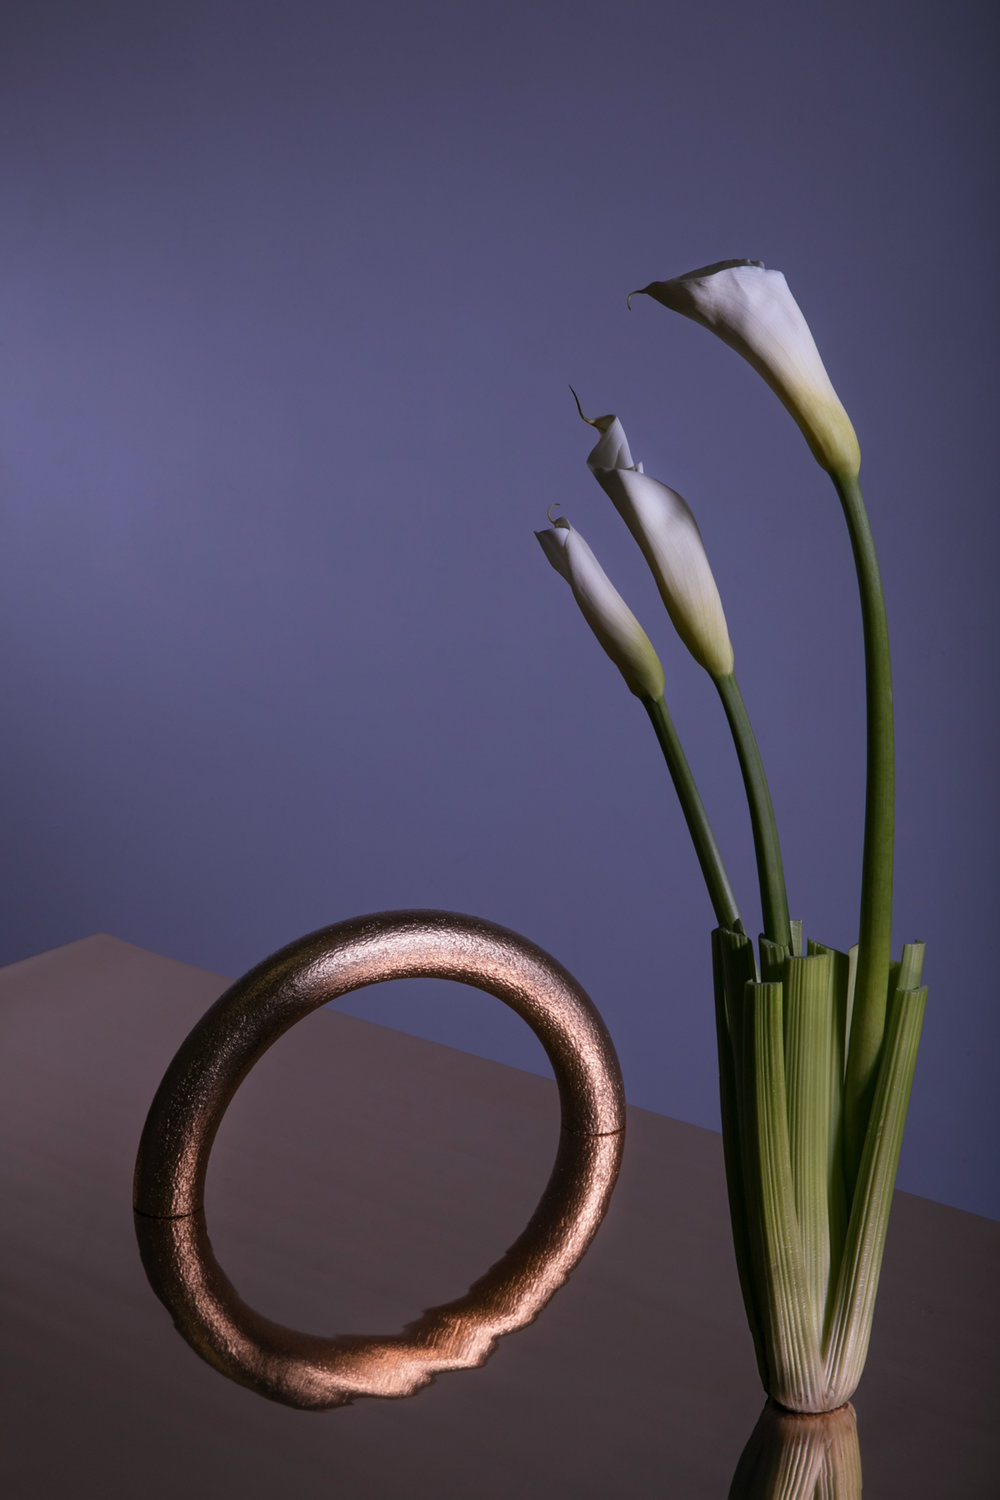 04_new-wave-ikebana_GracexAndria.jpg